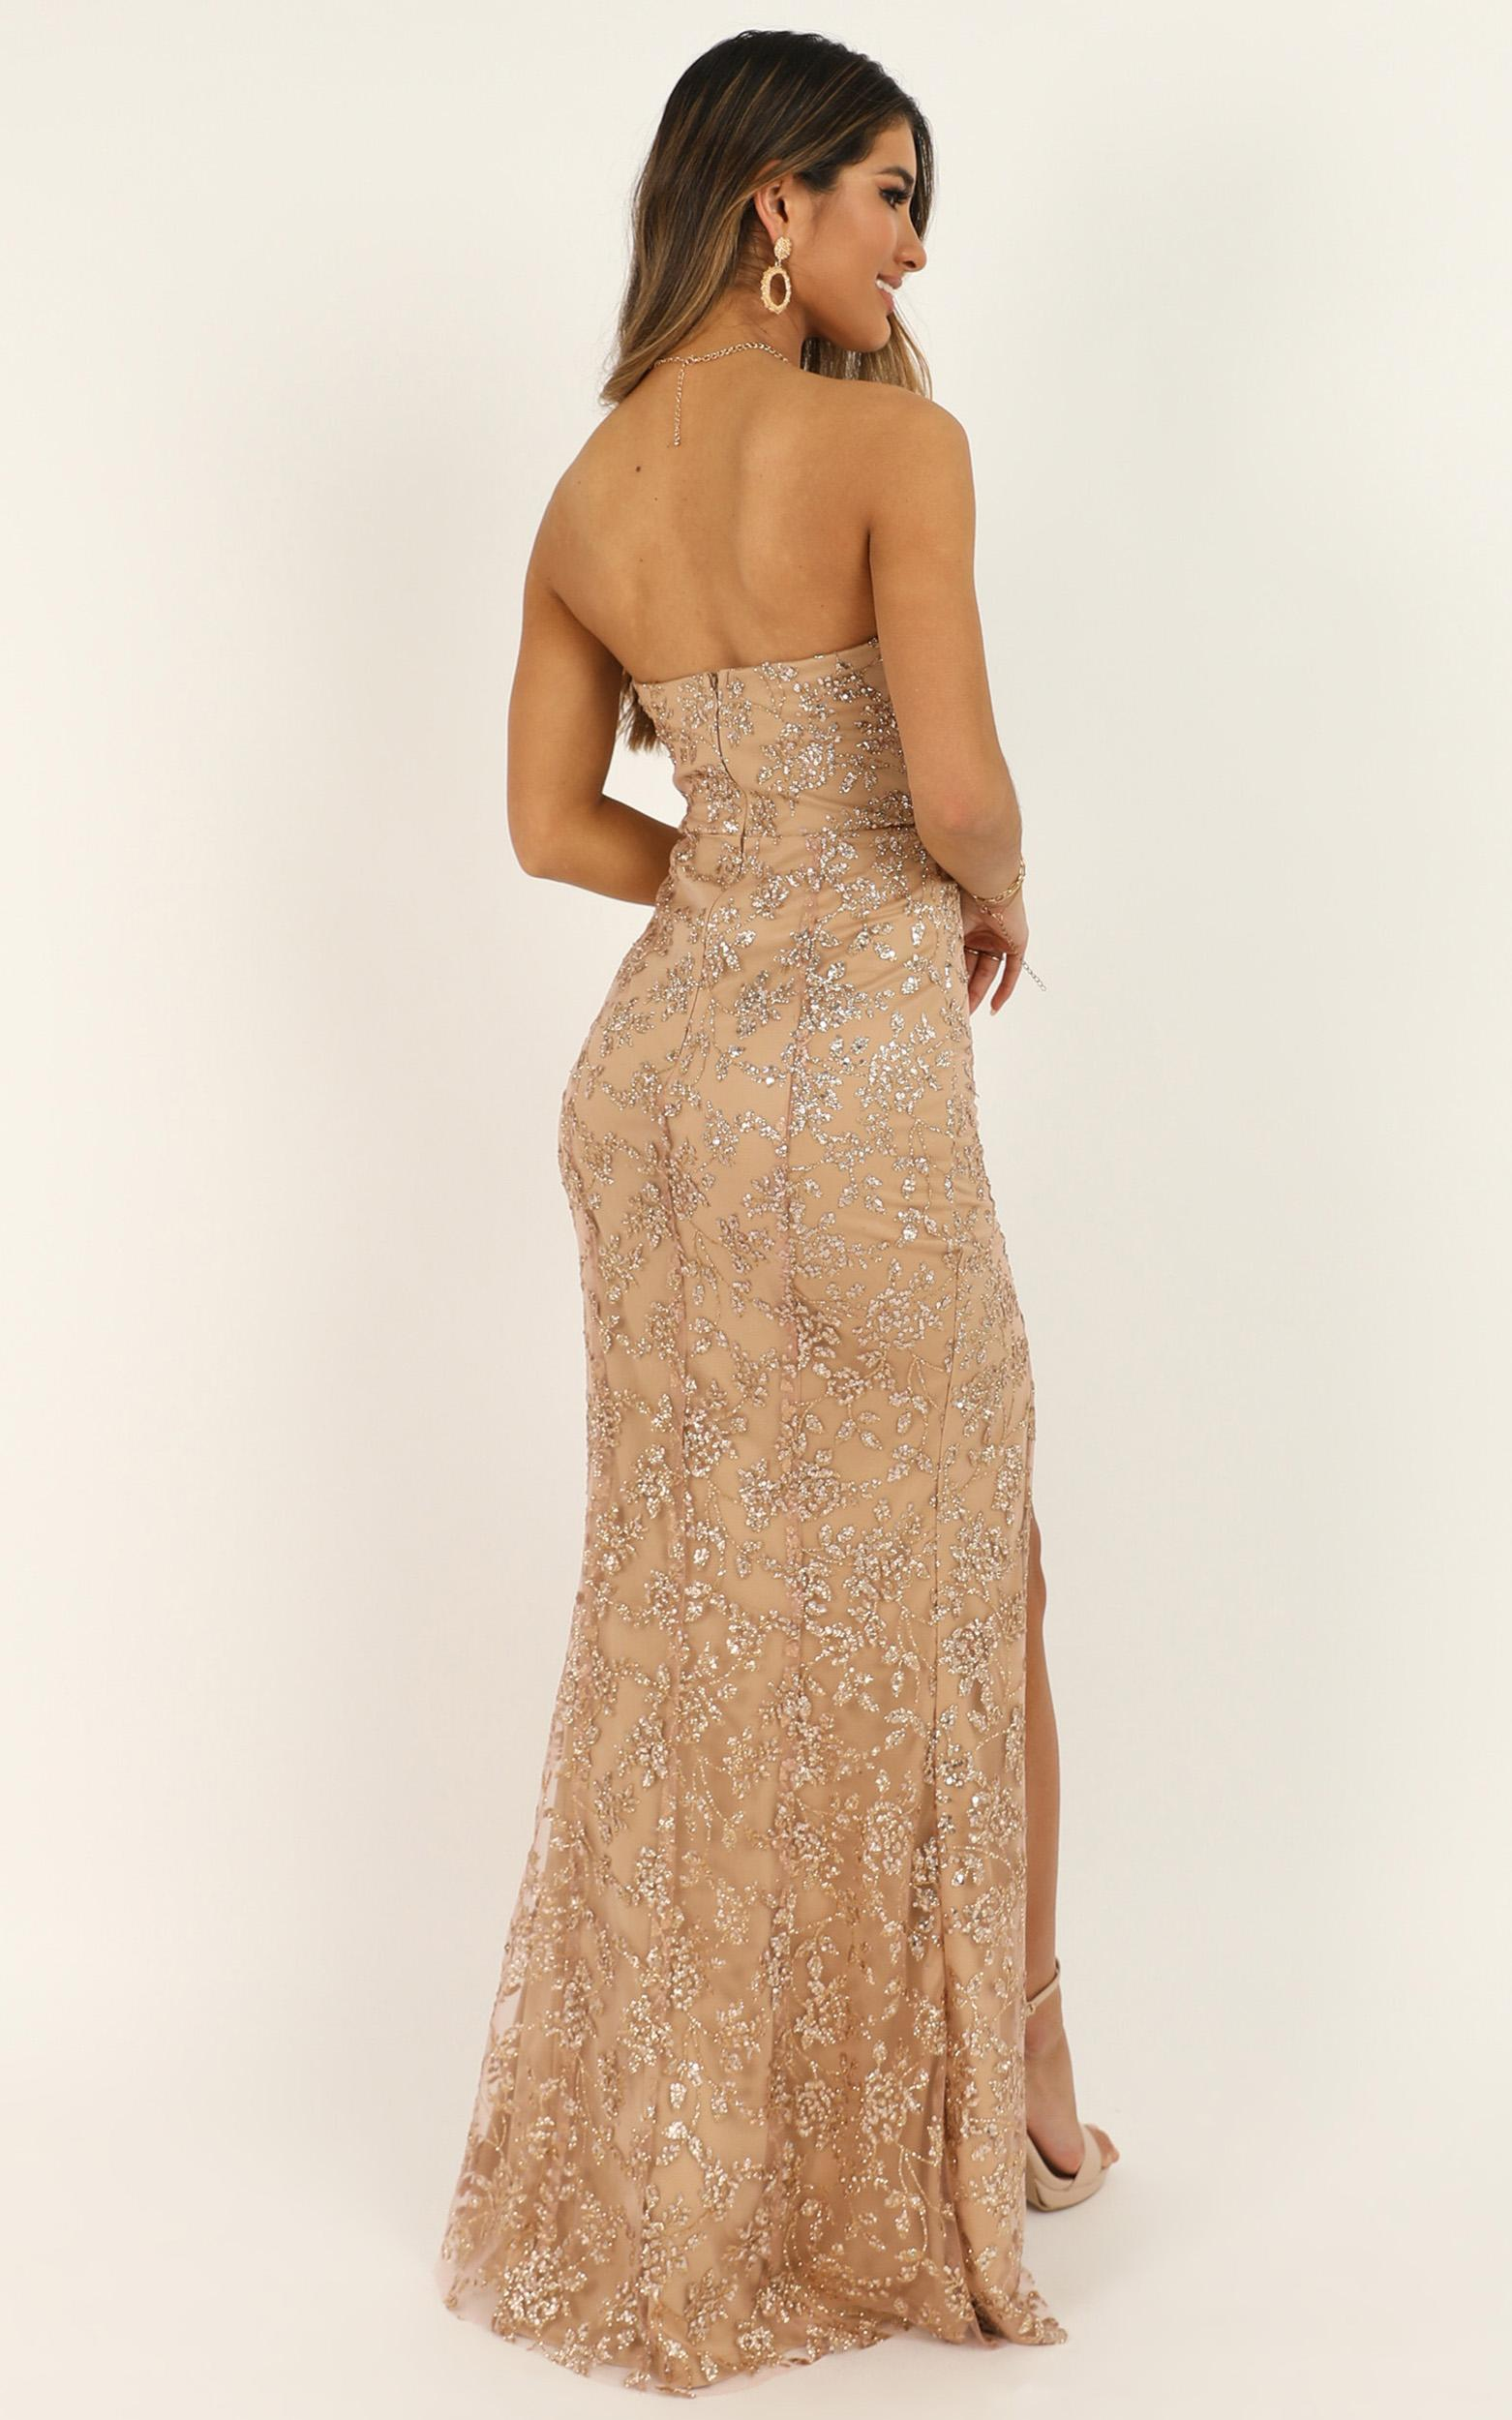 Say Its Not So Dress in rose gold glitter - 20 (XXXXL), Rose Gold, hi-res image number null